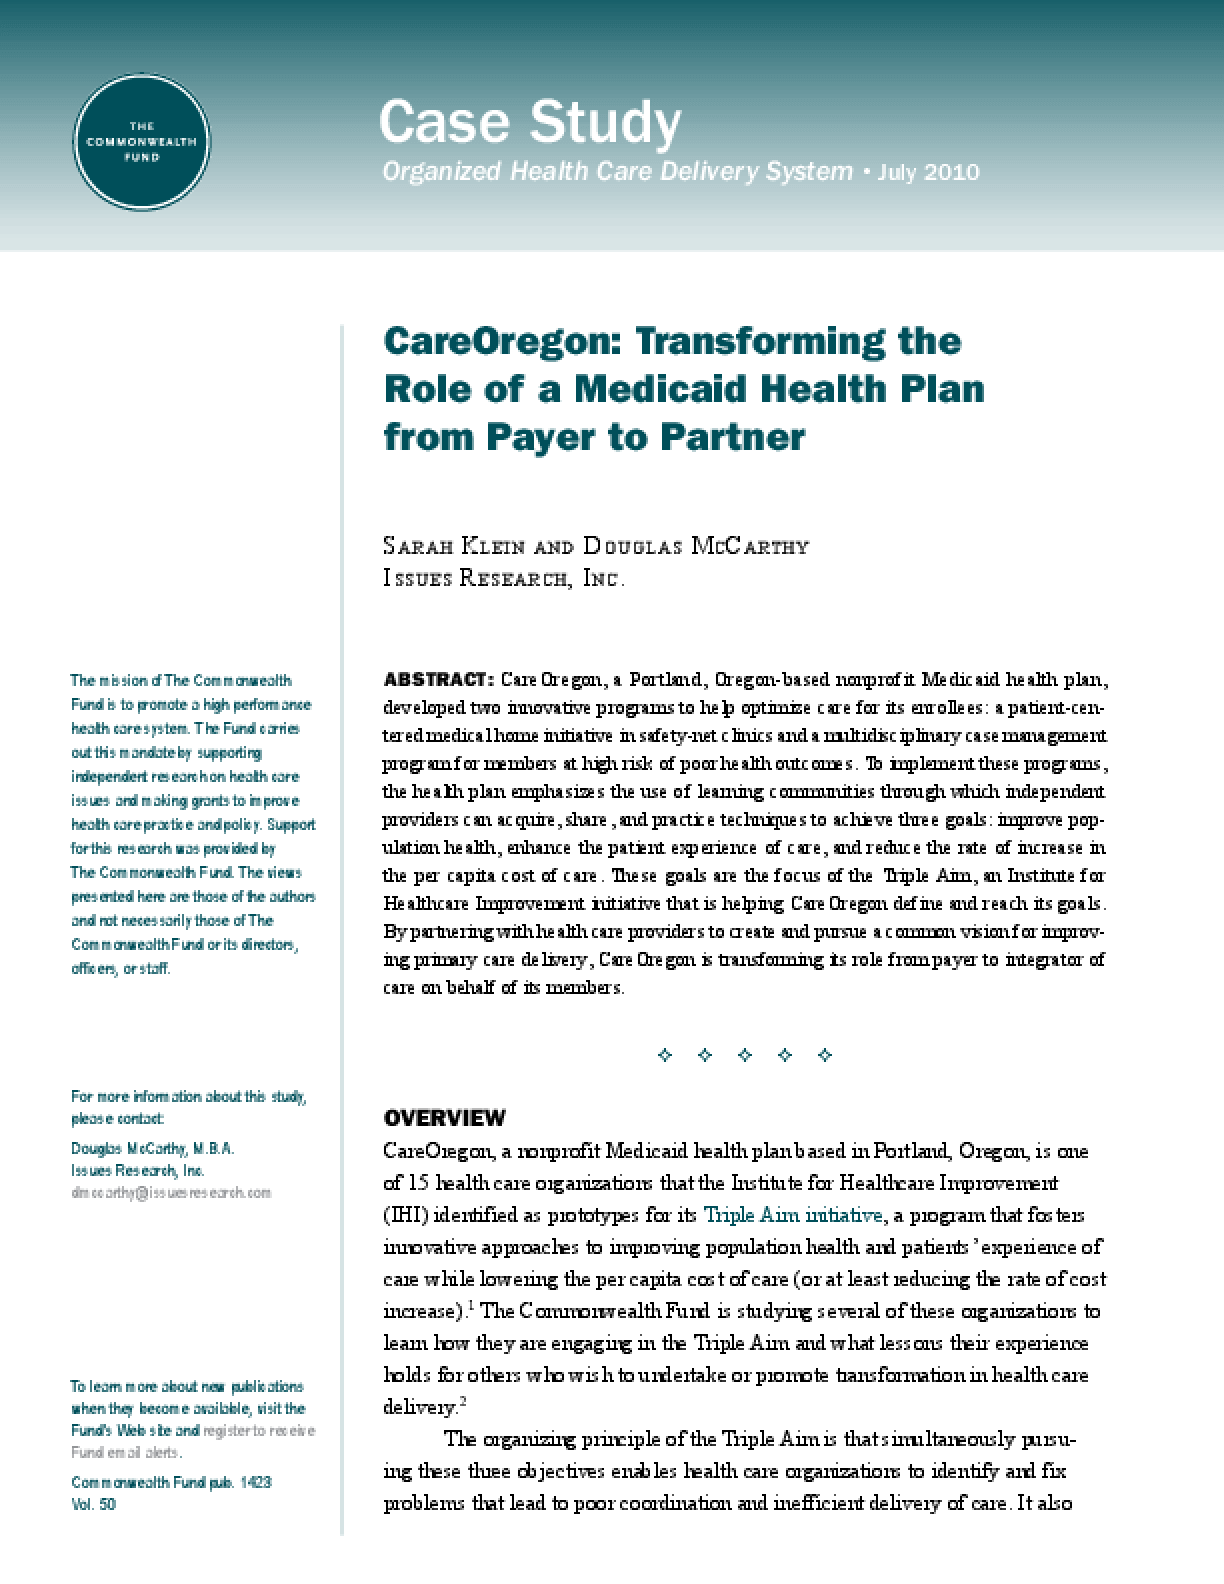 CareOregon: Transforming the Role of a Medicaid Health Plan From Payer to Partner